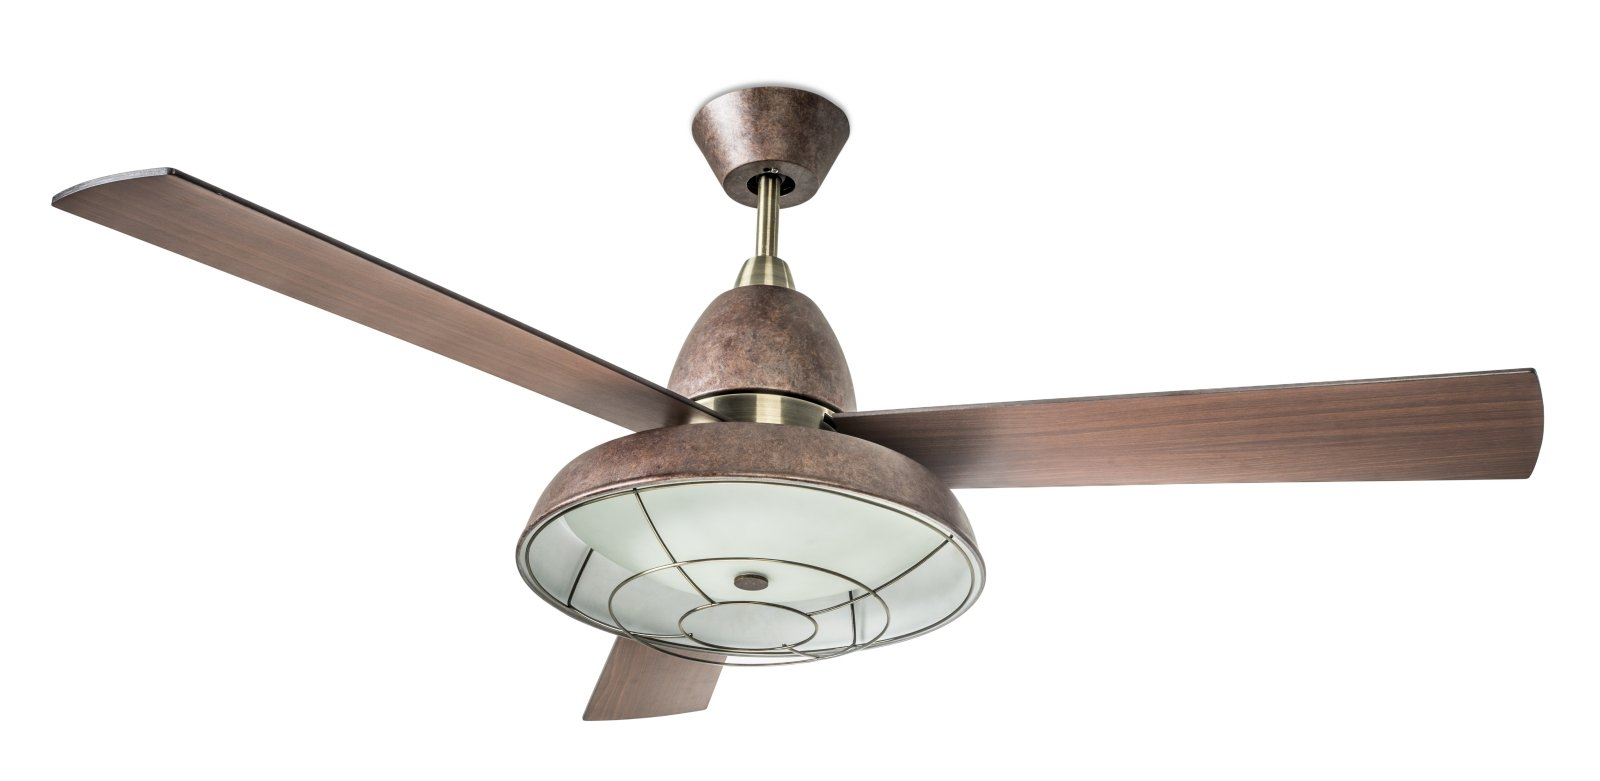 Vintage Looking Fan Retro Ceiling Fan With Caged Light